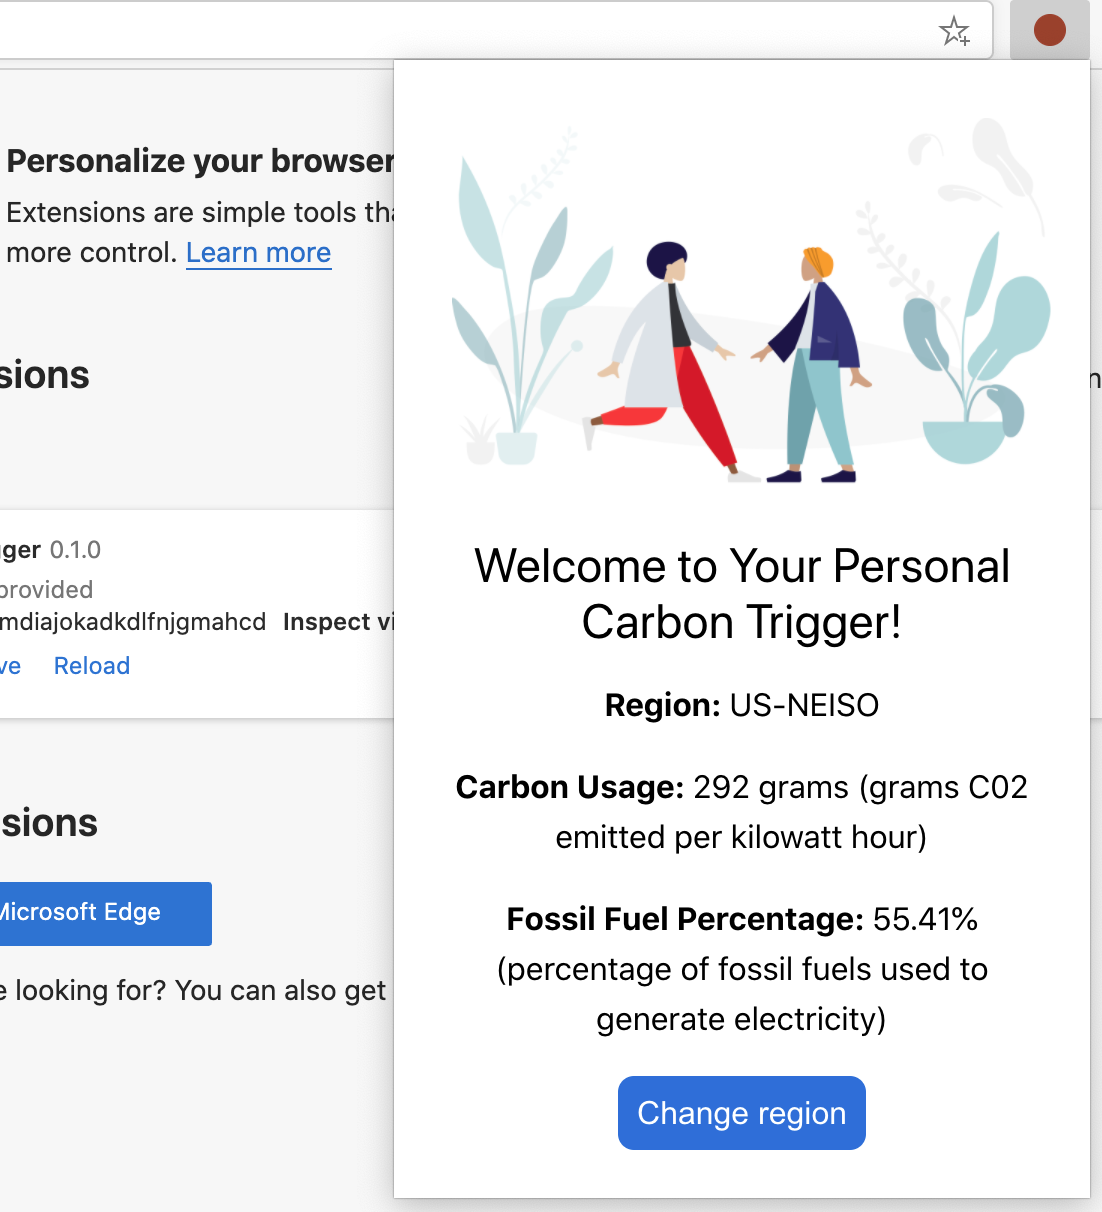 screenshot of the completed extension displaying values for carbon usage and fossil fuel percentage for the US-NEISO region.